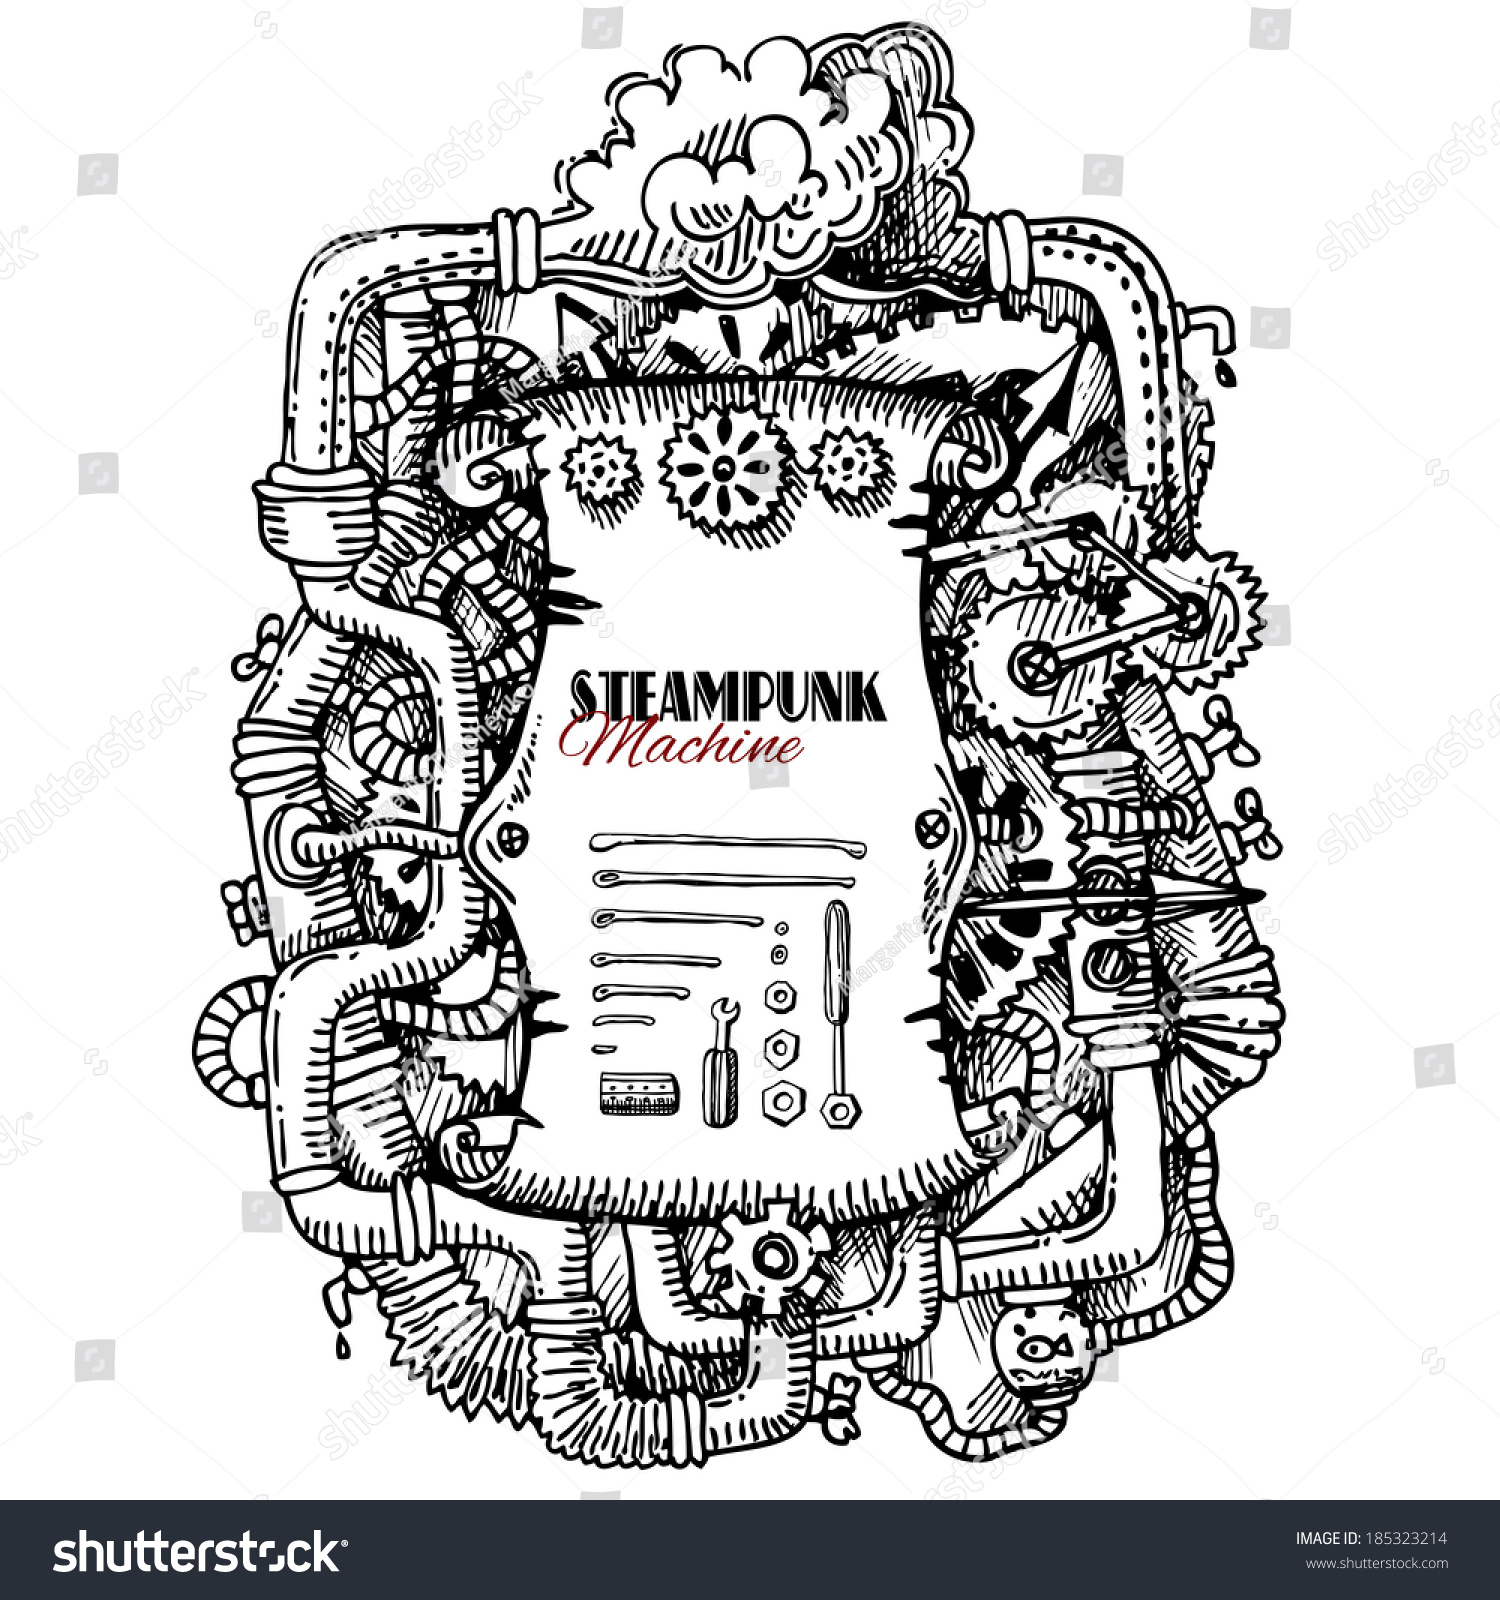 Steampunk Frame Stock Vector (Royalty Free) 185323214 - Shutterstock